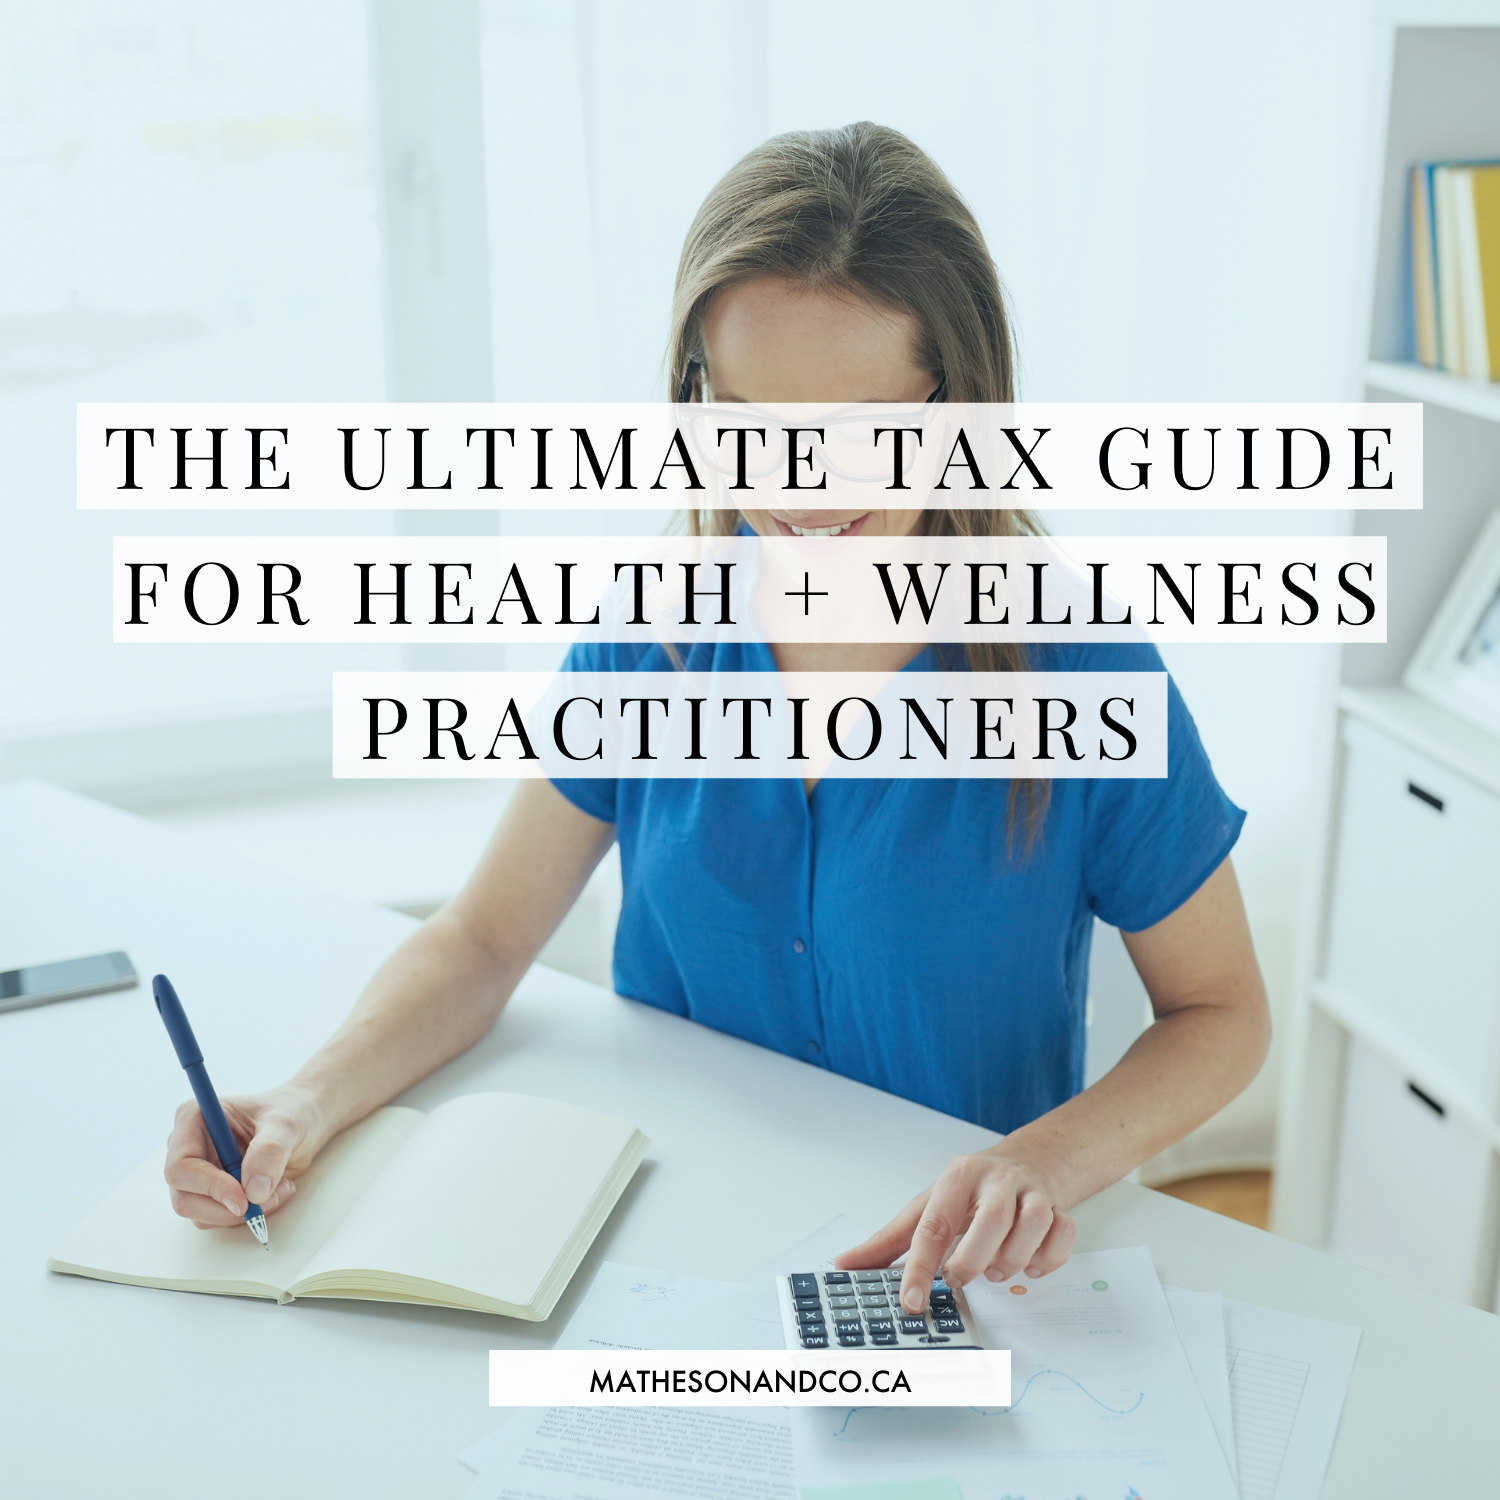 The Ultimate Tax Guide for Health + Wellness Practitioners